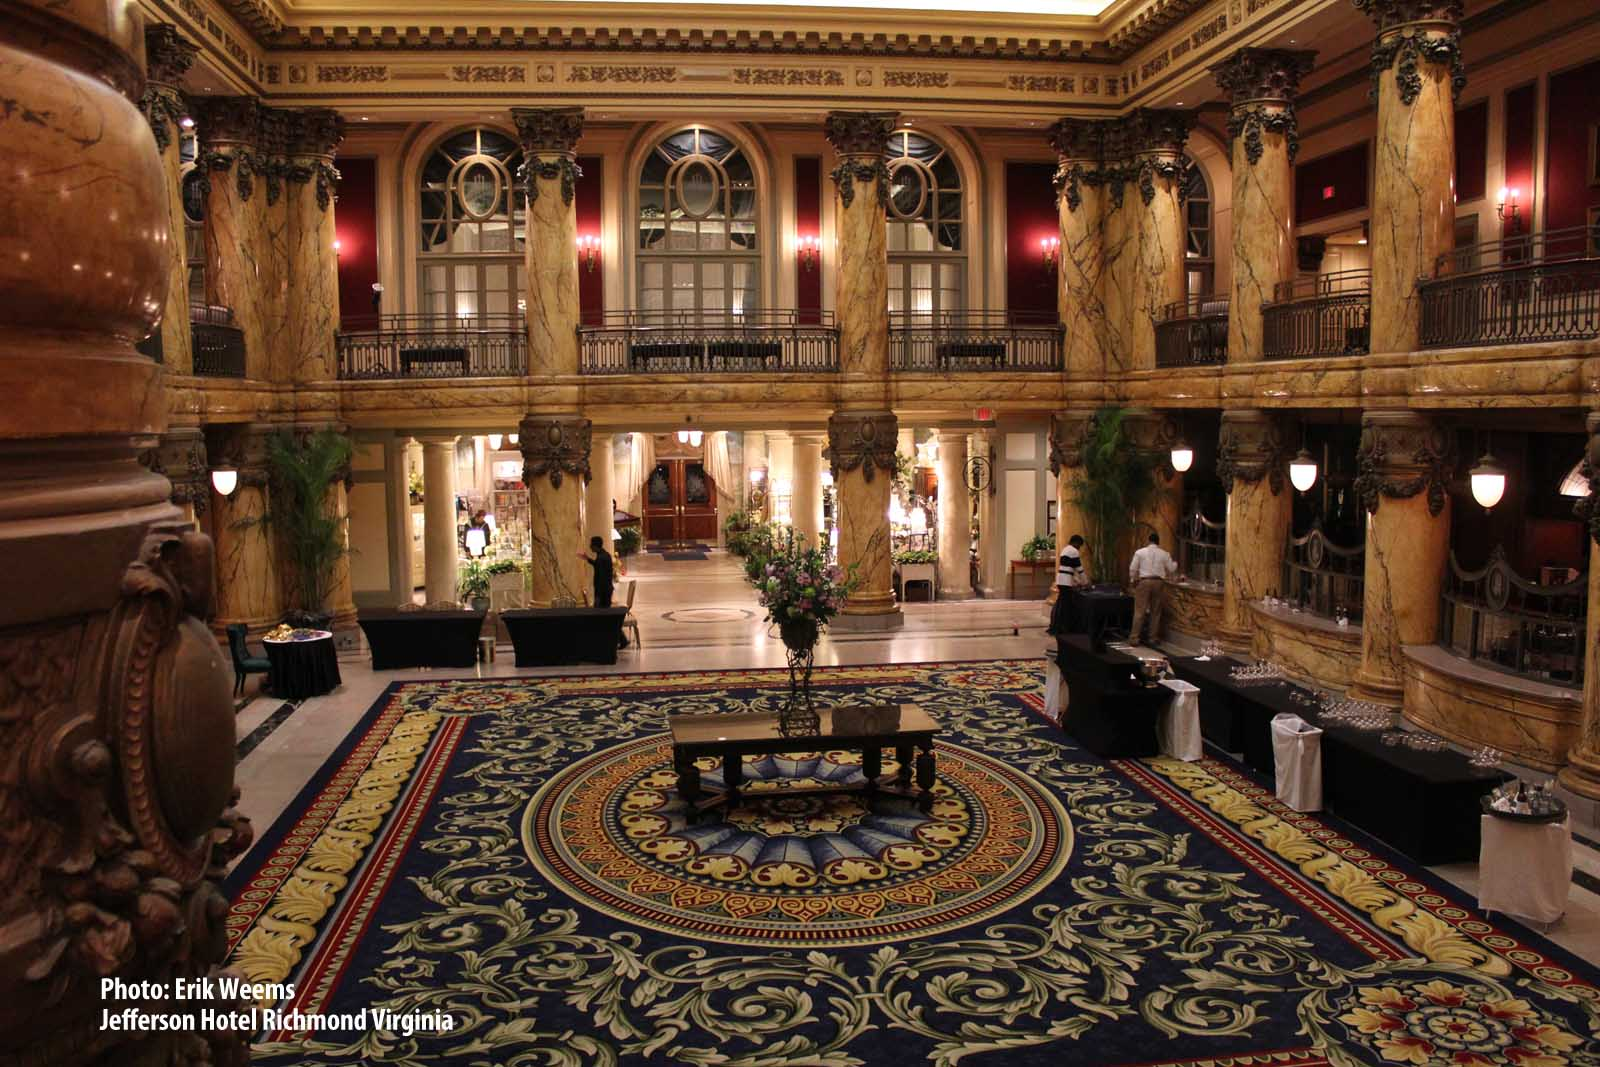 Enlarged - Inside the Jefferson Hotel Richmond Virginia